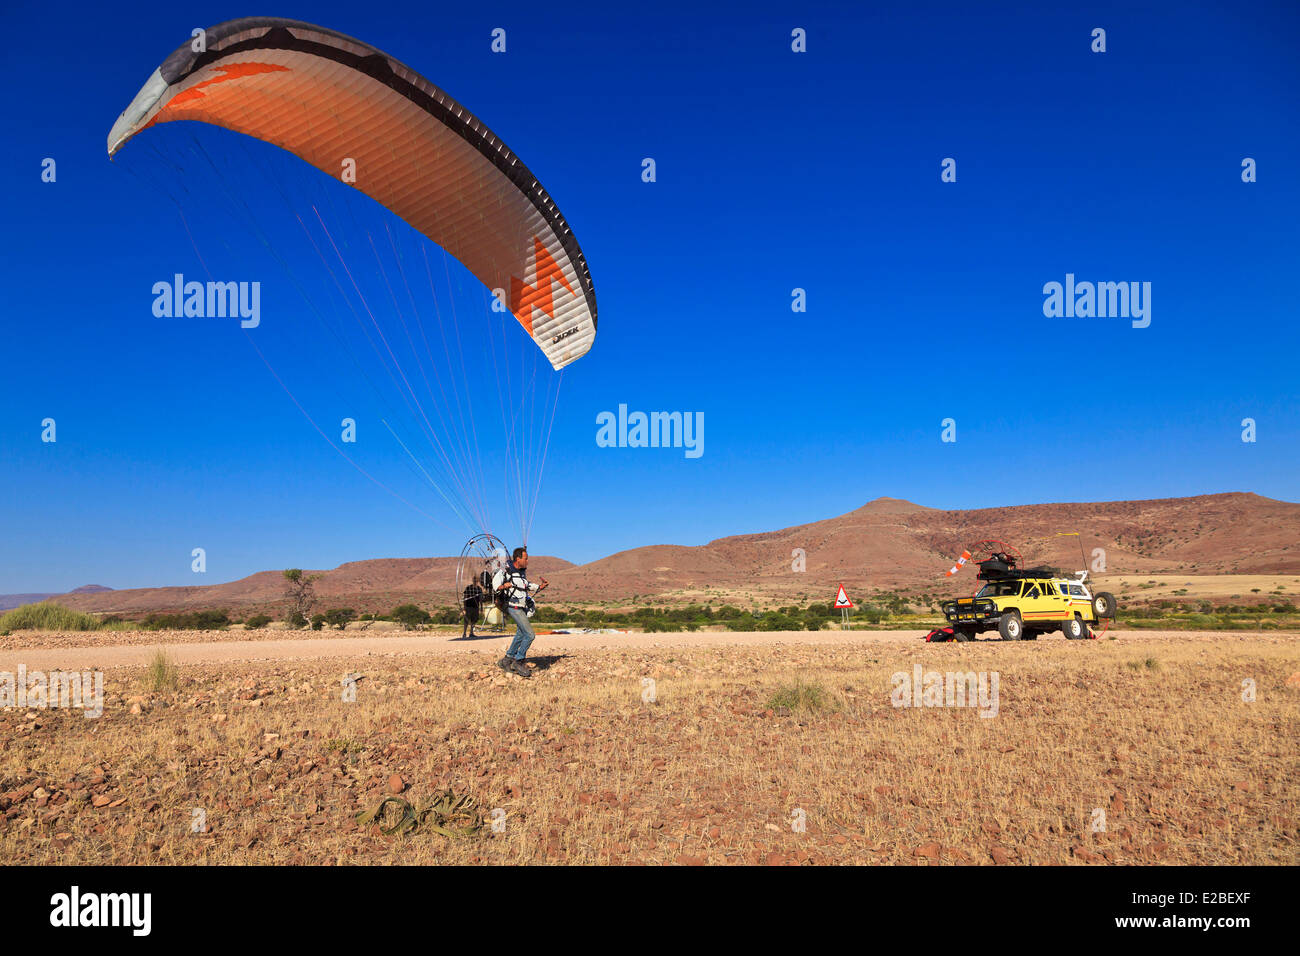 Namibia, Damaraland, near Palmwag, takeoff of paramotor - Stock Image